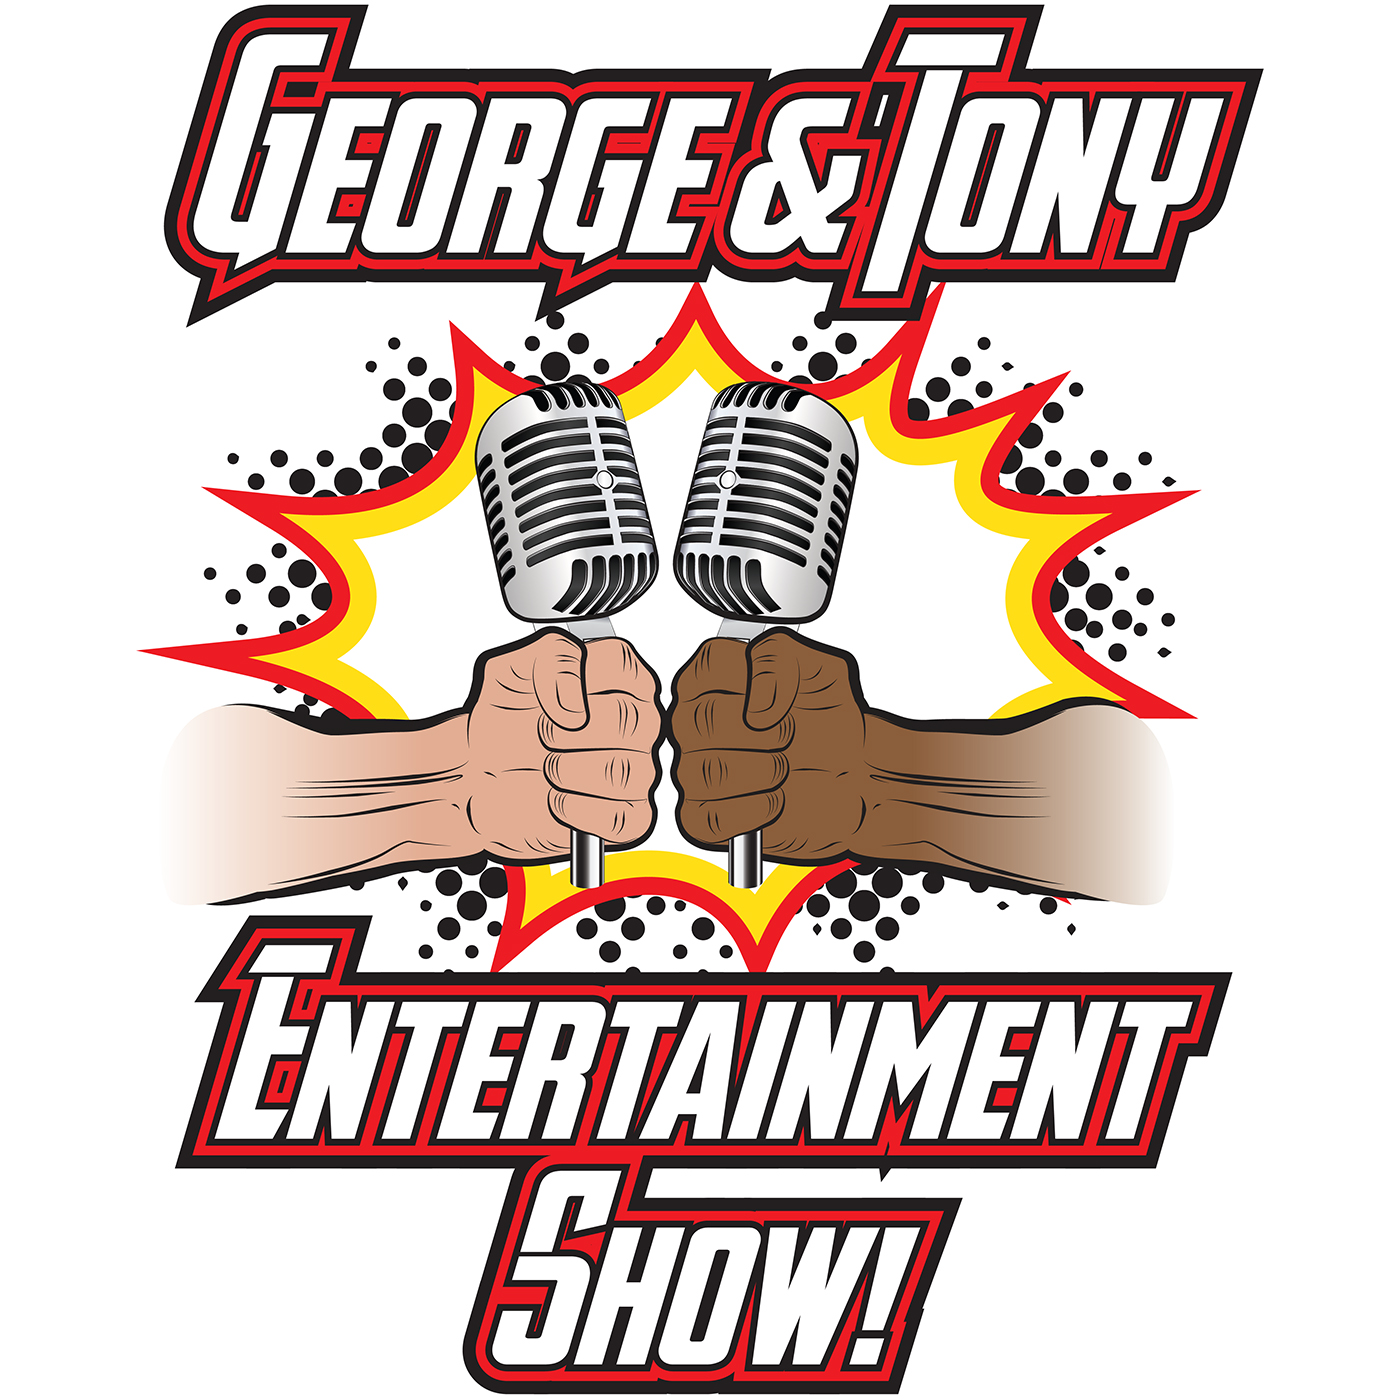 George and Tony Entertainment Show #67